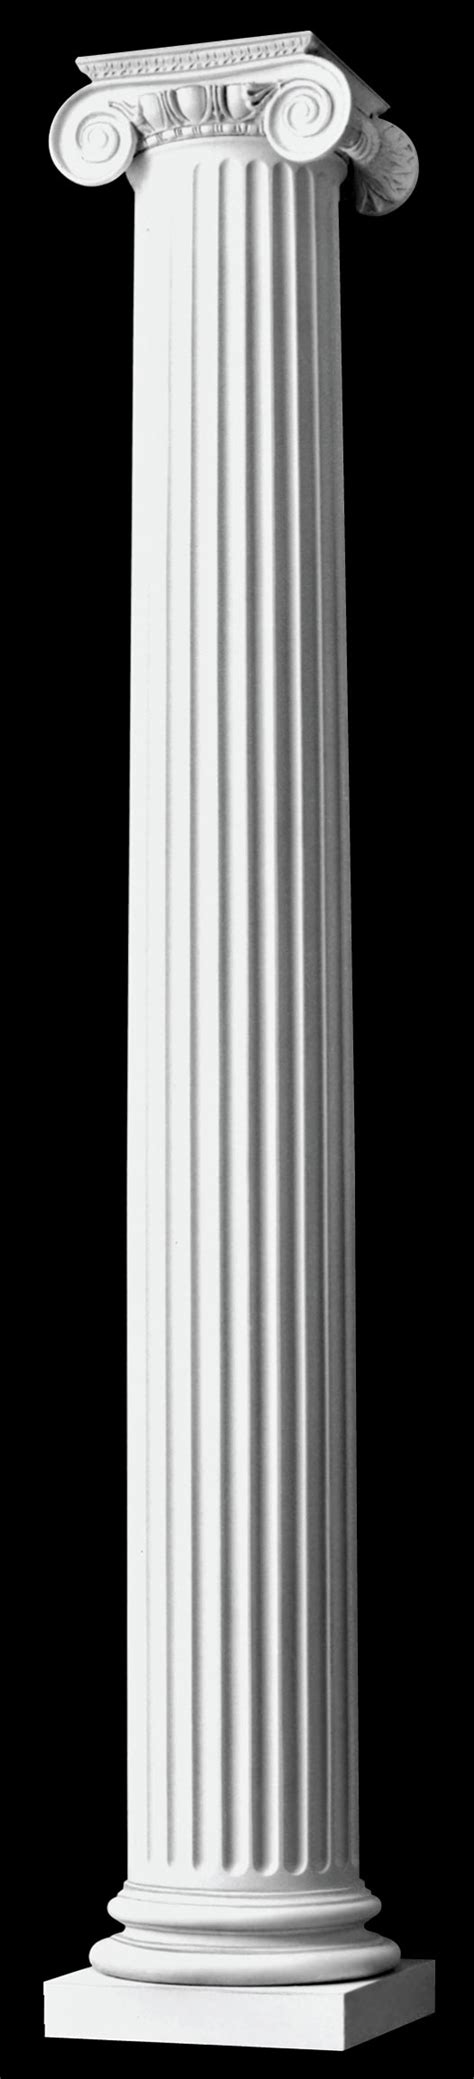 authentic replication ionic wood columns fluted